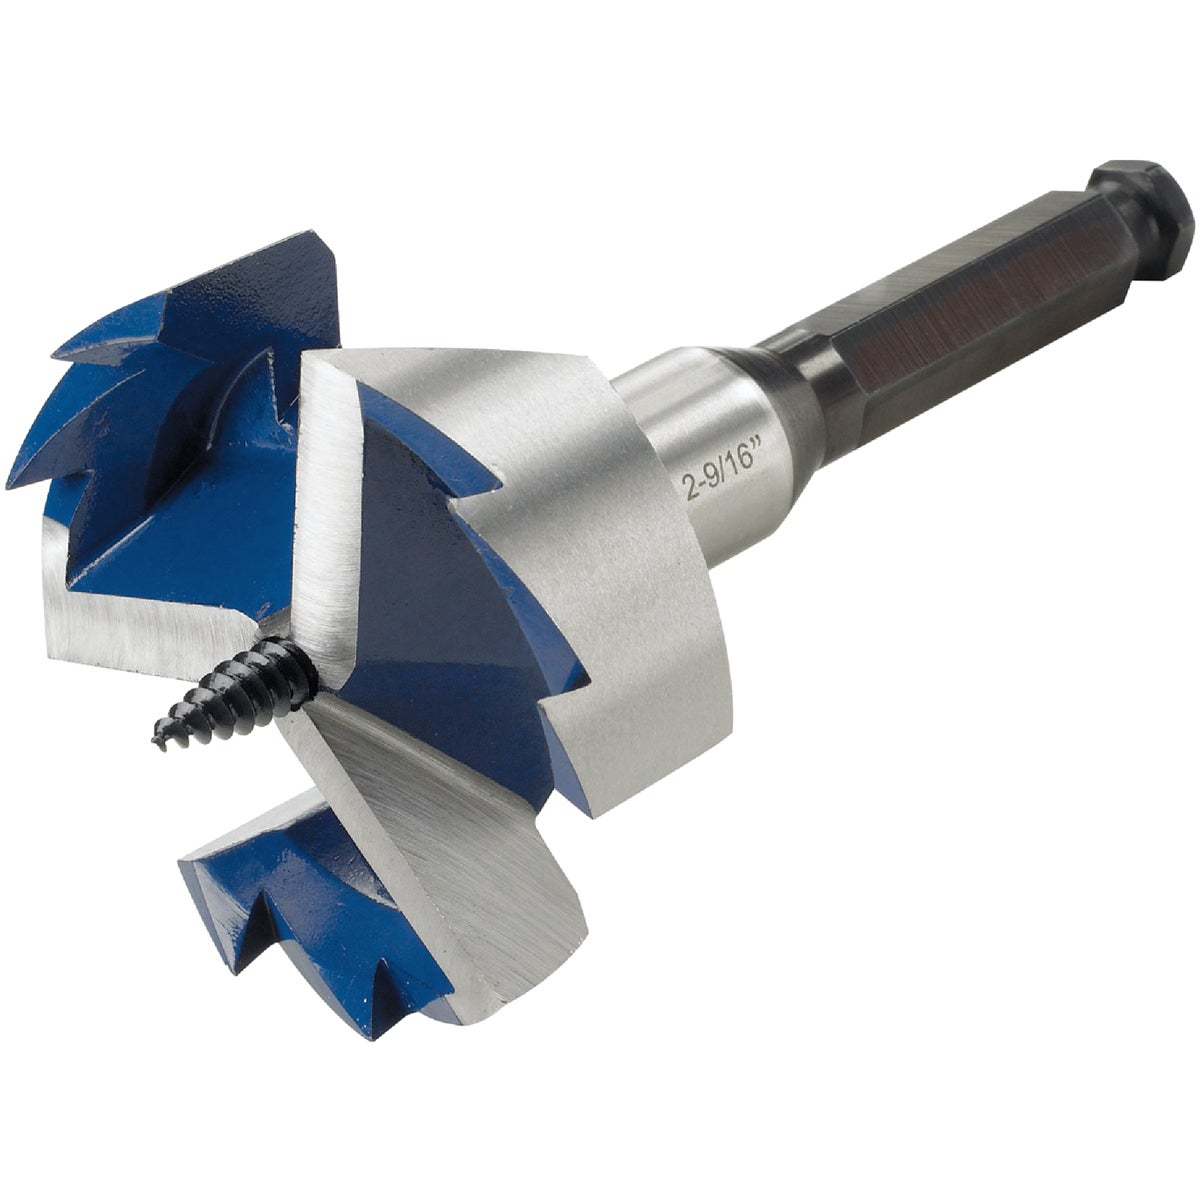 "2-9/16"" SPEEDBOR MAX BIT - 3046013 by Irwin Industr Tool"